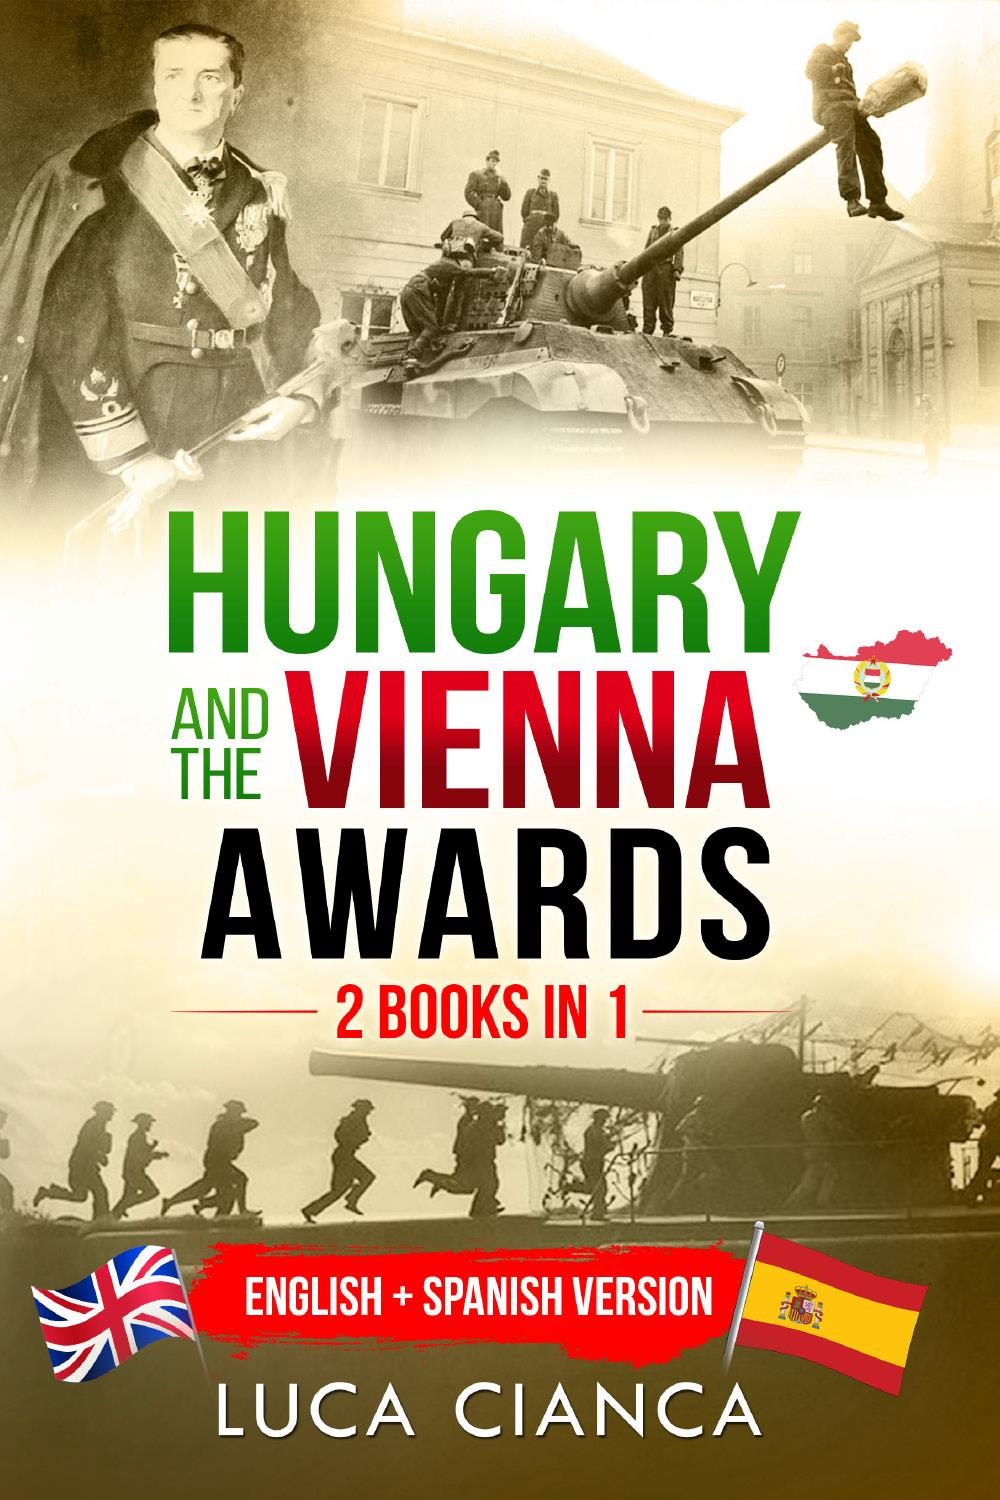 Hungary and the Vienna Awards. (2 Books in 1). English + Spanish  Version